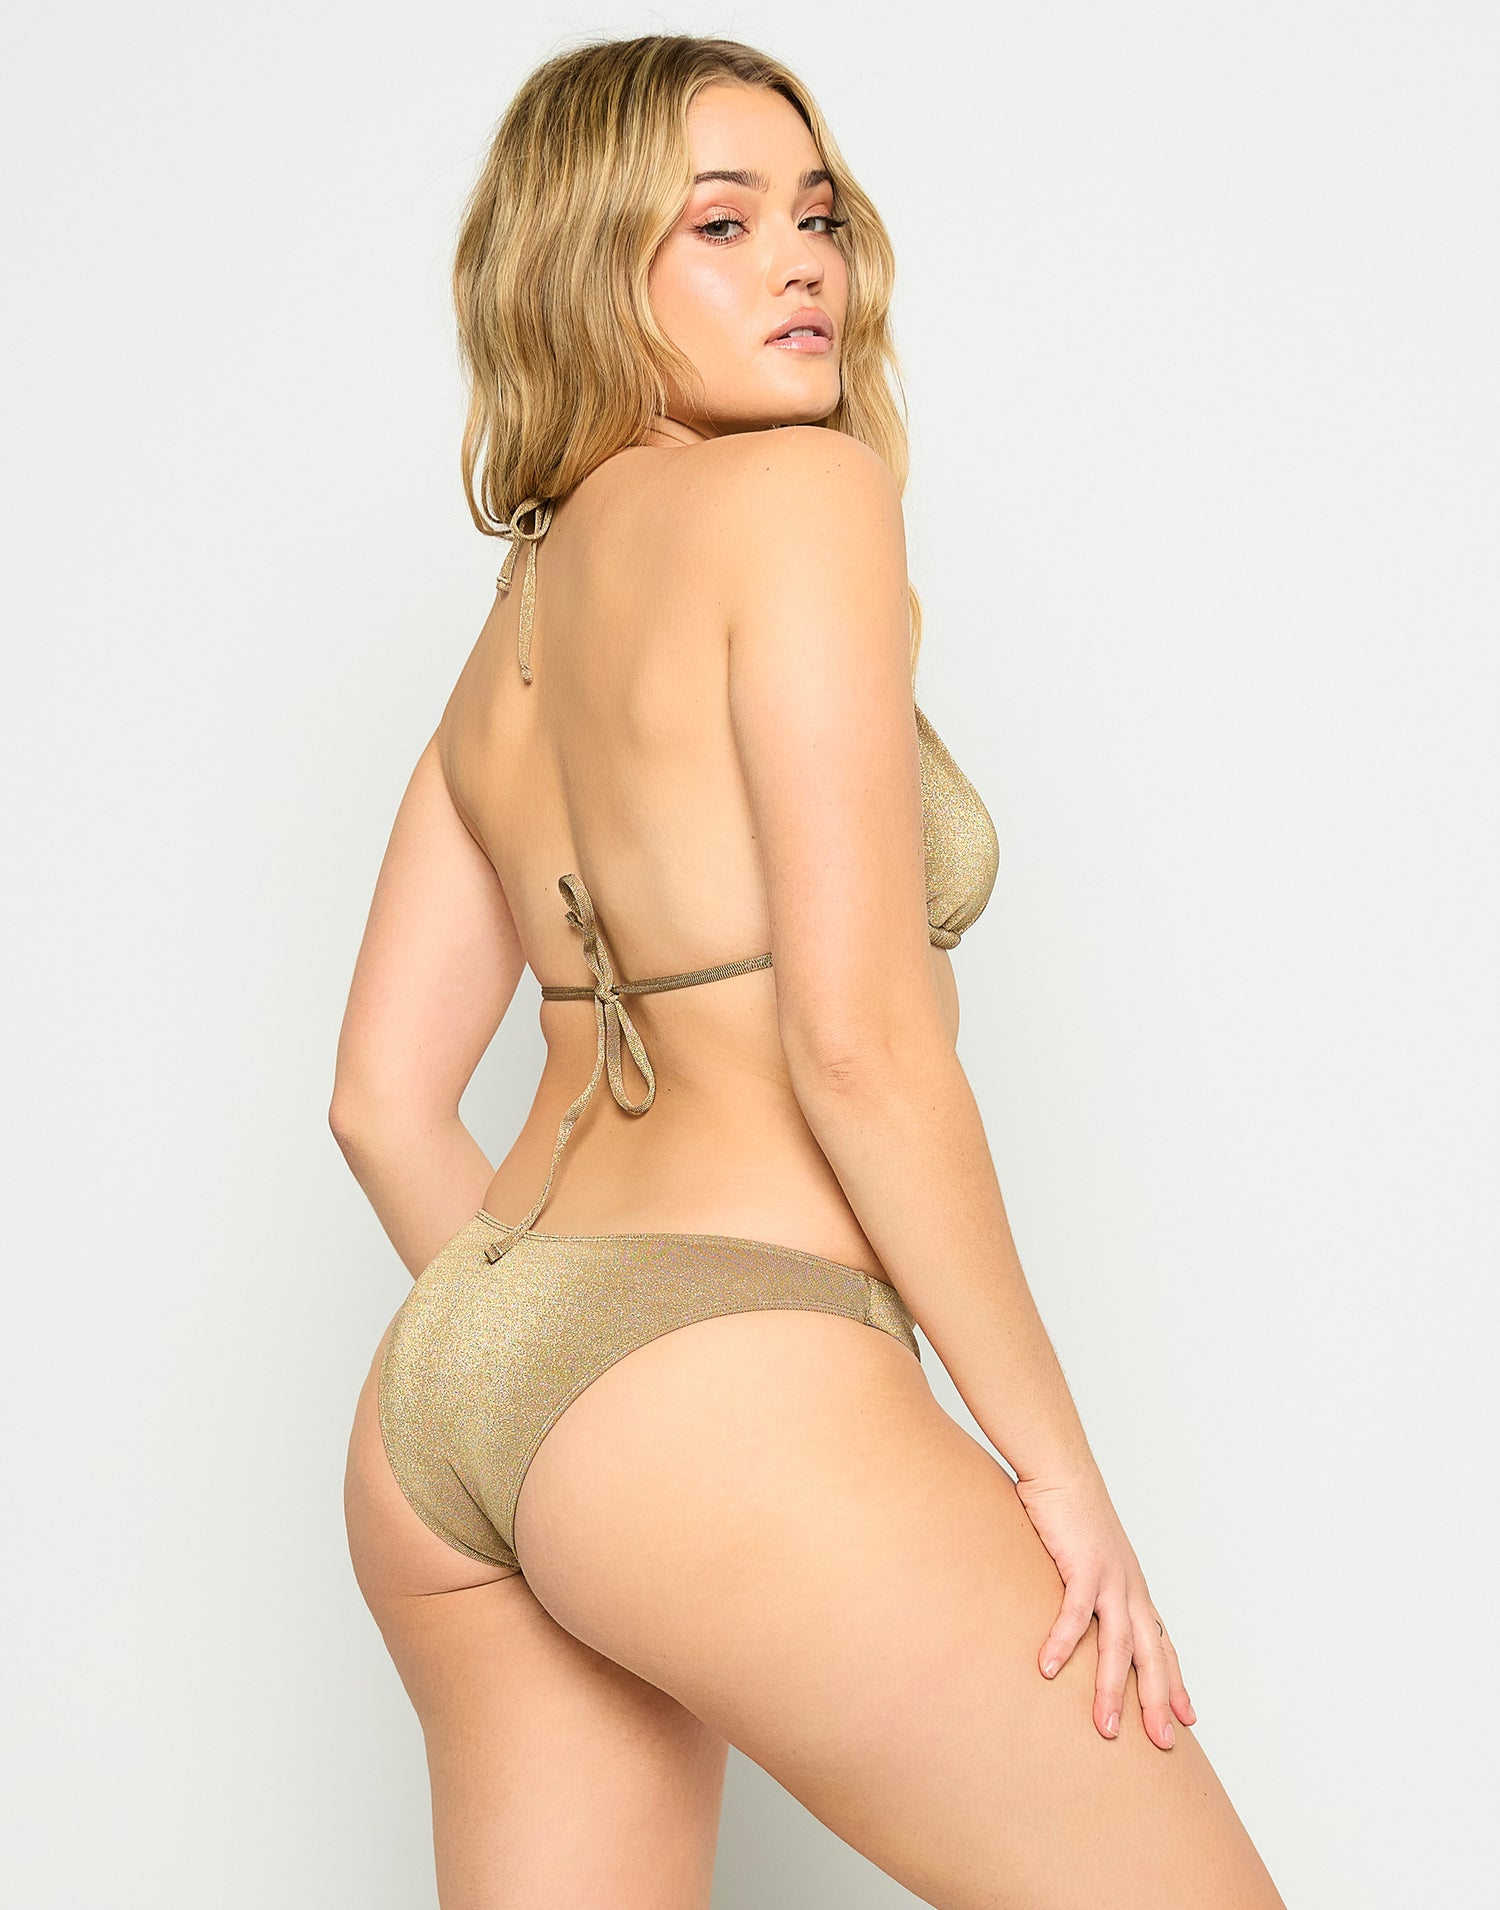 Madison High Apex Bikini Top in Tortuga with Gold Hardware - Alternate Back View